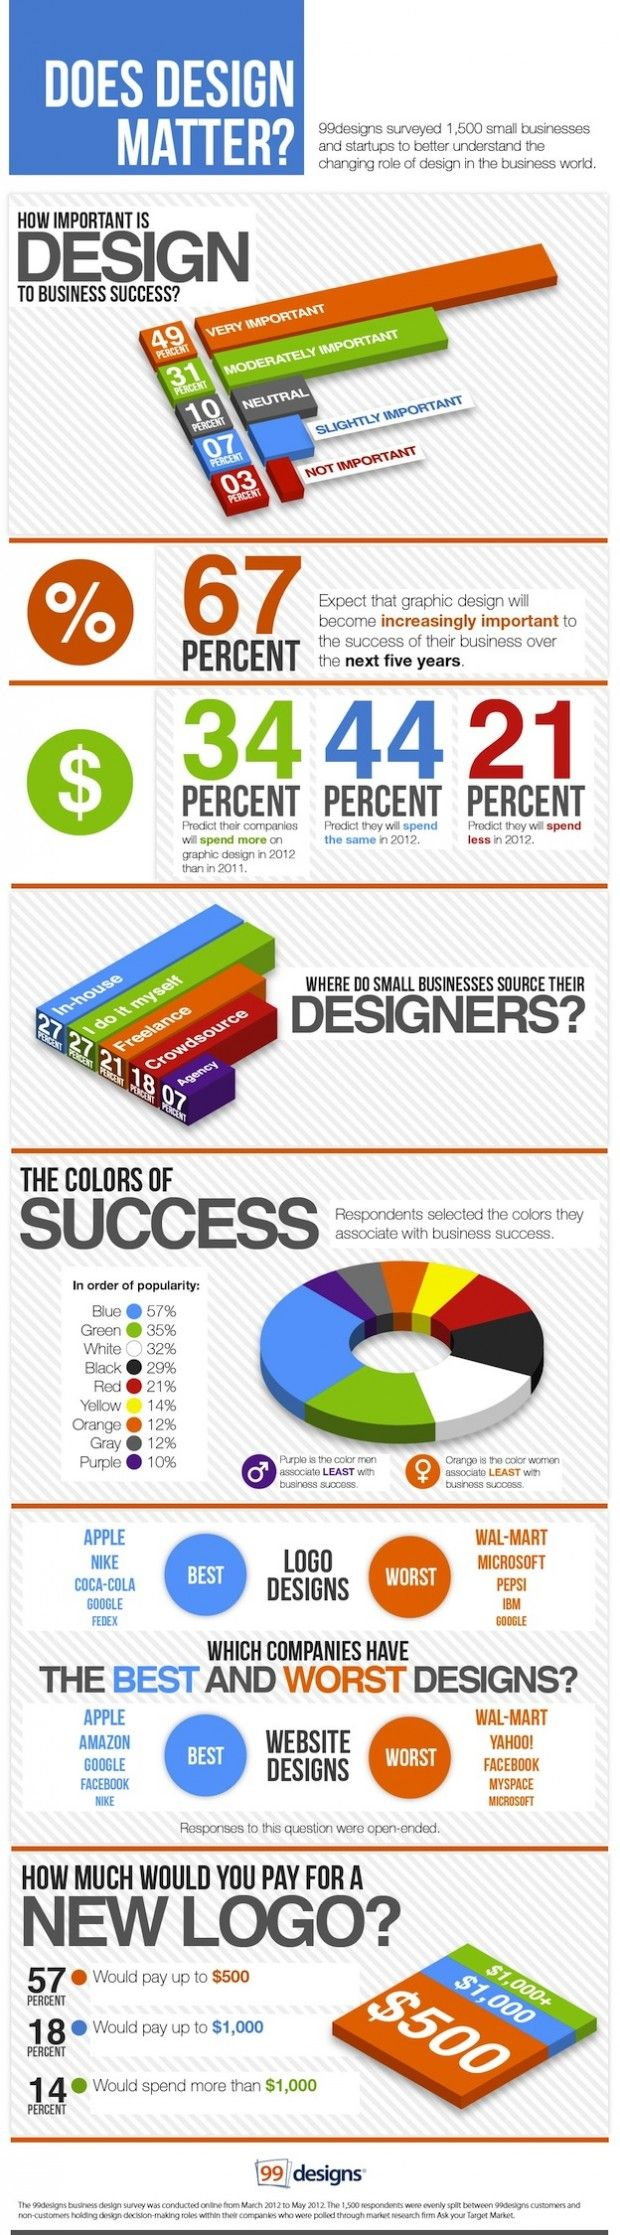 Does Design Matter: Design Collection, Webdesign,  Website, Web Design, Design Matter, Graphics Design, Work Design, Infographic, Bar Graph